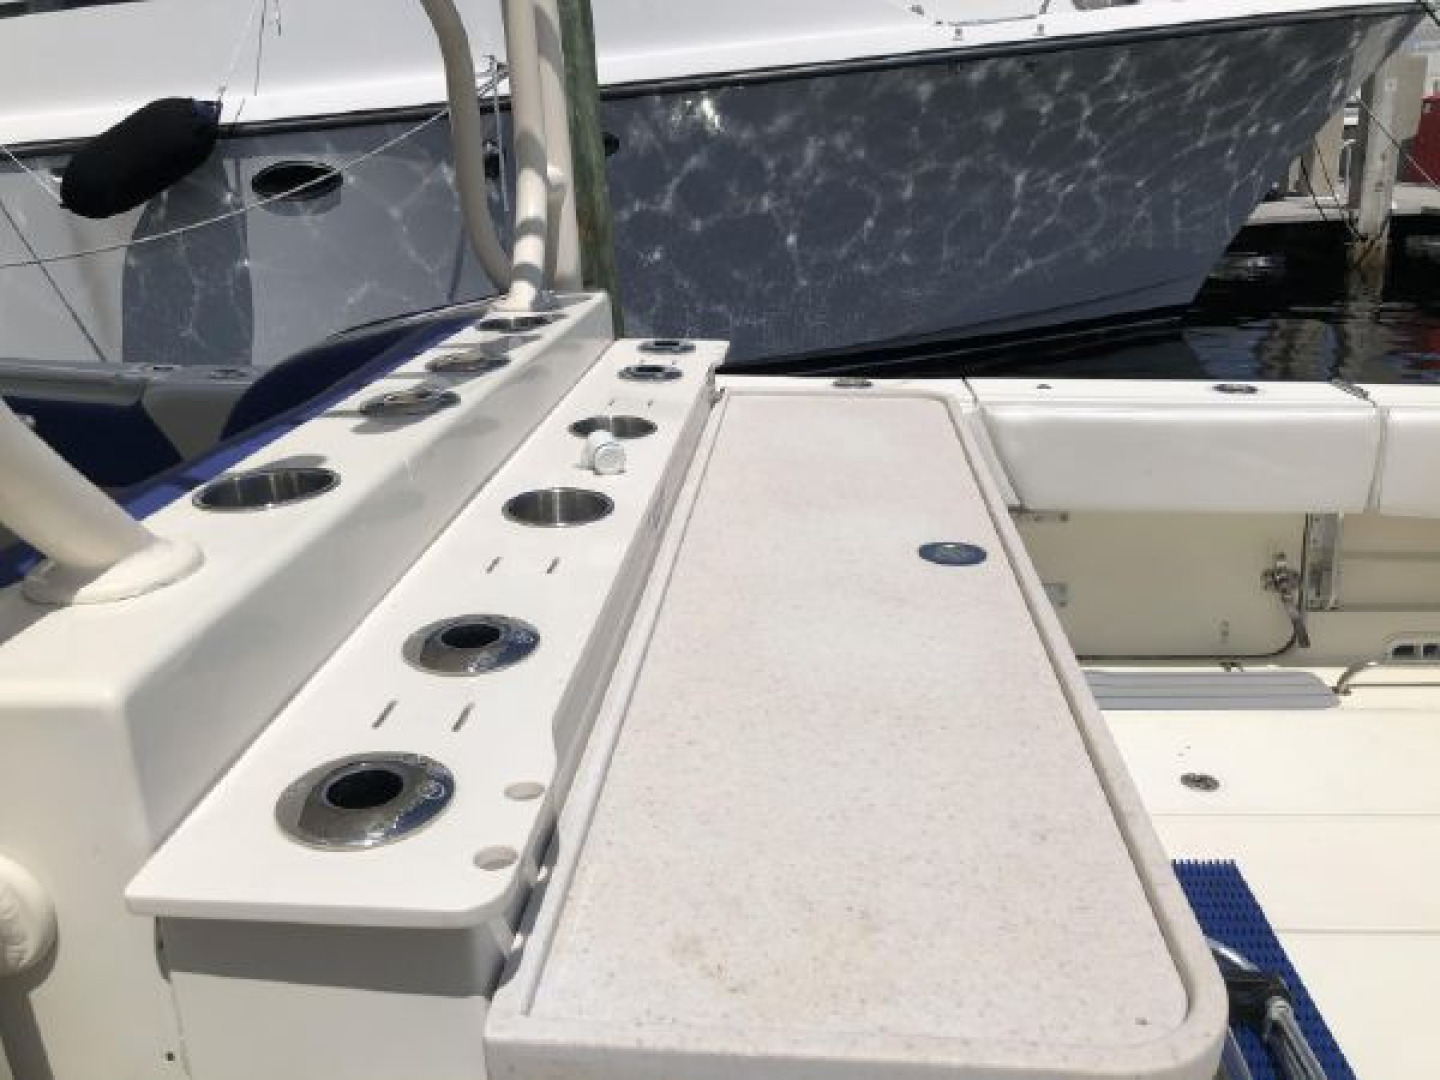 Hydra-Sports-42 Center Console 4200 SF 2011 -Fort Lauderdale-Florida-United States-1564123 | Thumbnail